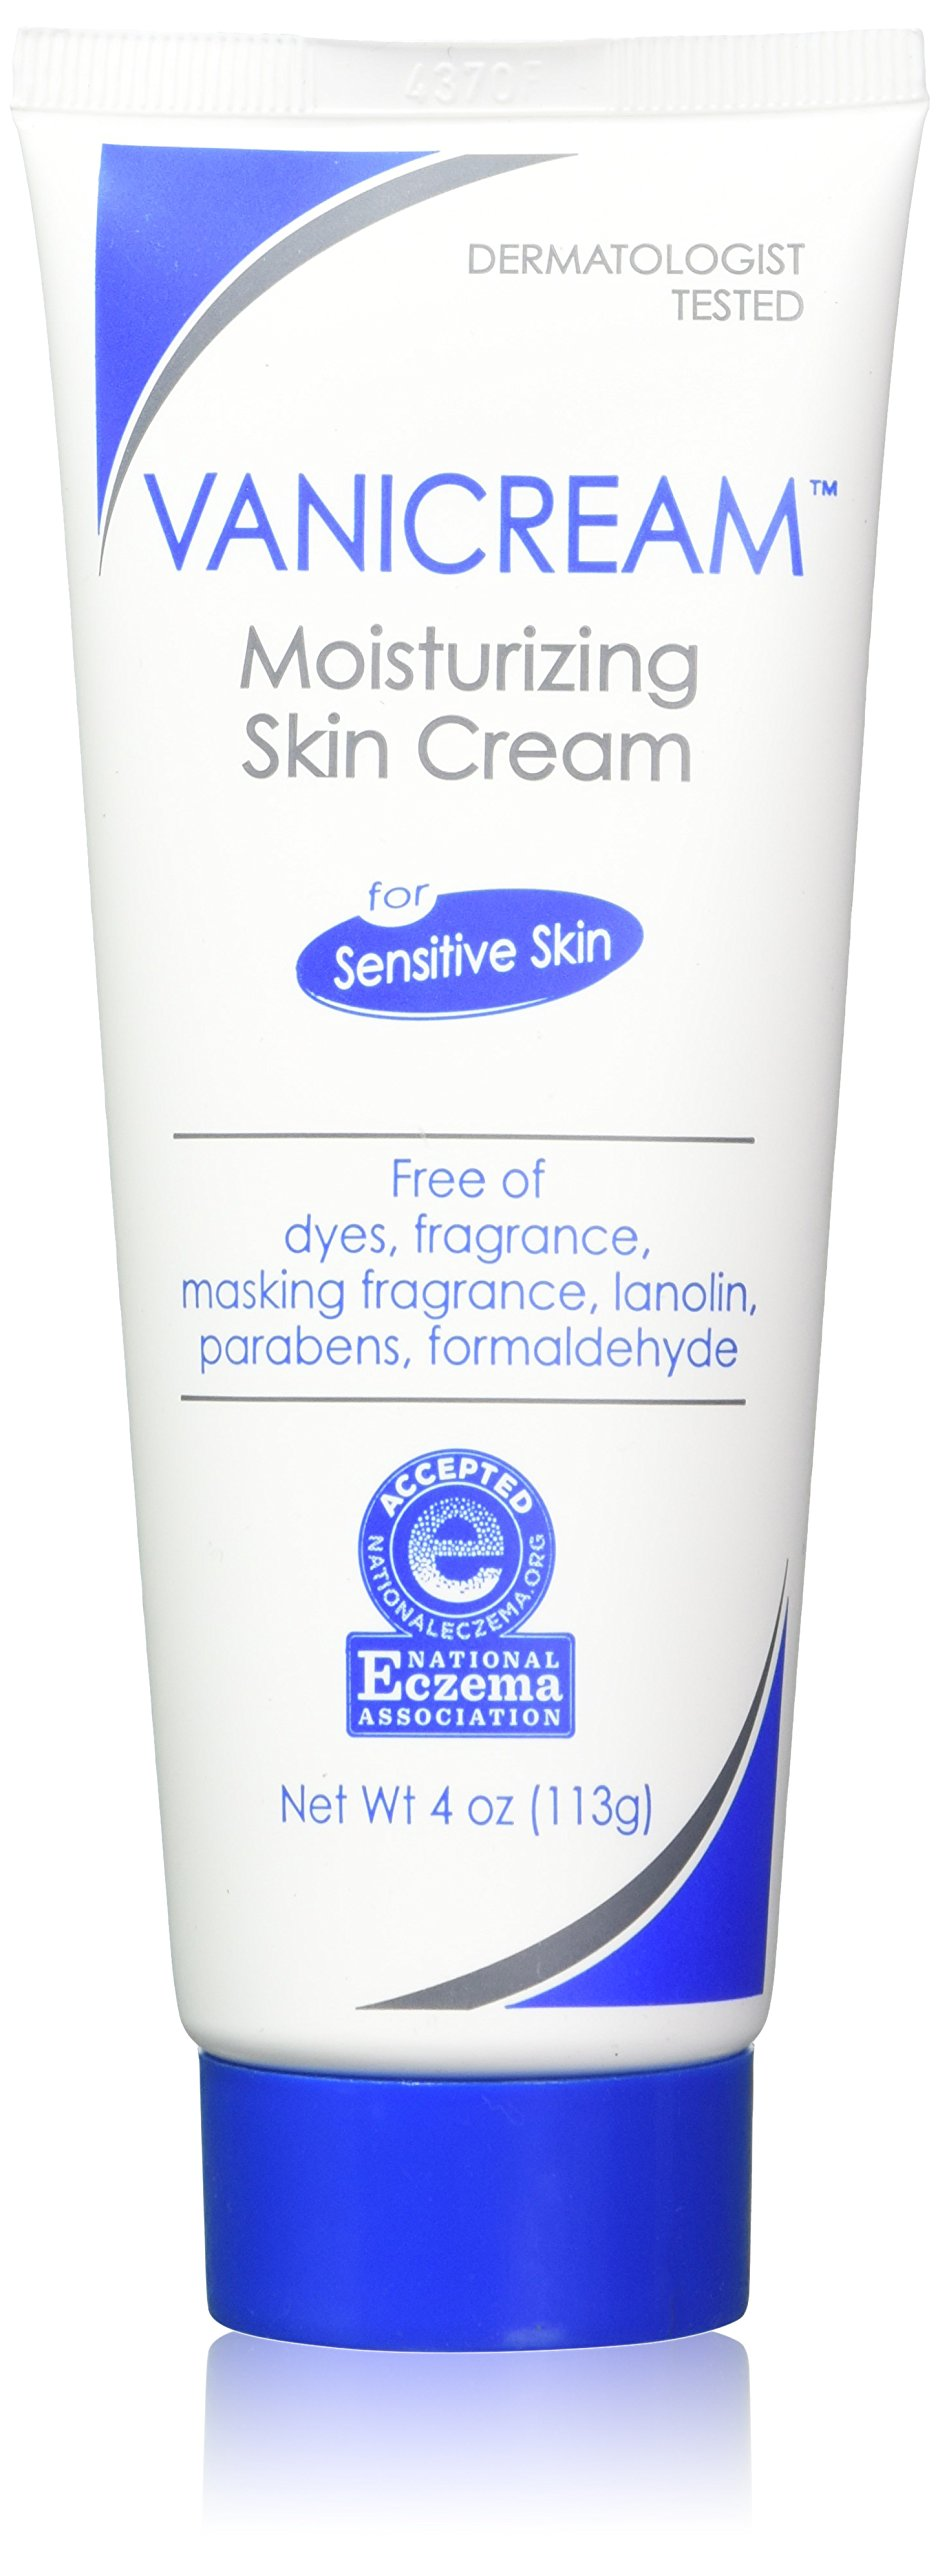 Lite Lotion for Sensitive Skin - 8 fl. oz. by Vanicream (pack of 12) RSVP Anti Aging Face Serum for Men - Natural Organic Antioxidant Rich Formula to Fight Age Spots and Free Radicals - Preserves Collagen and Reduces Wrinkles and Fine Lines - Safe for Sensitive Skin